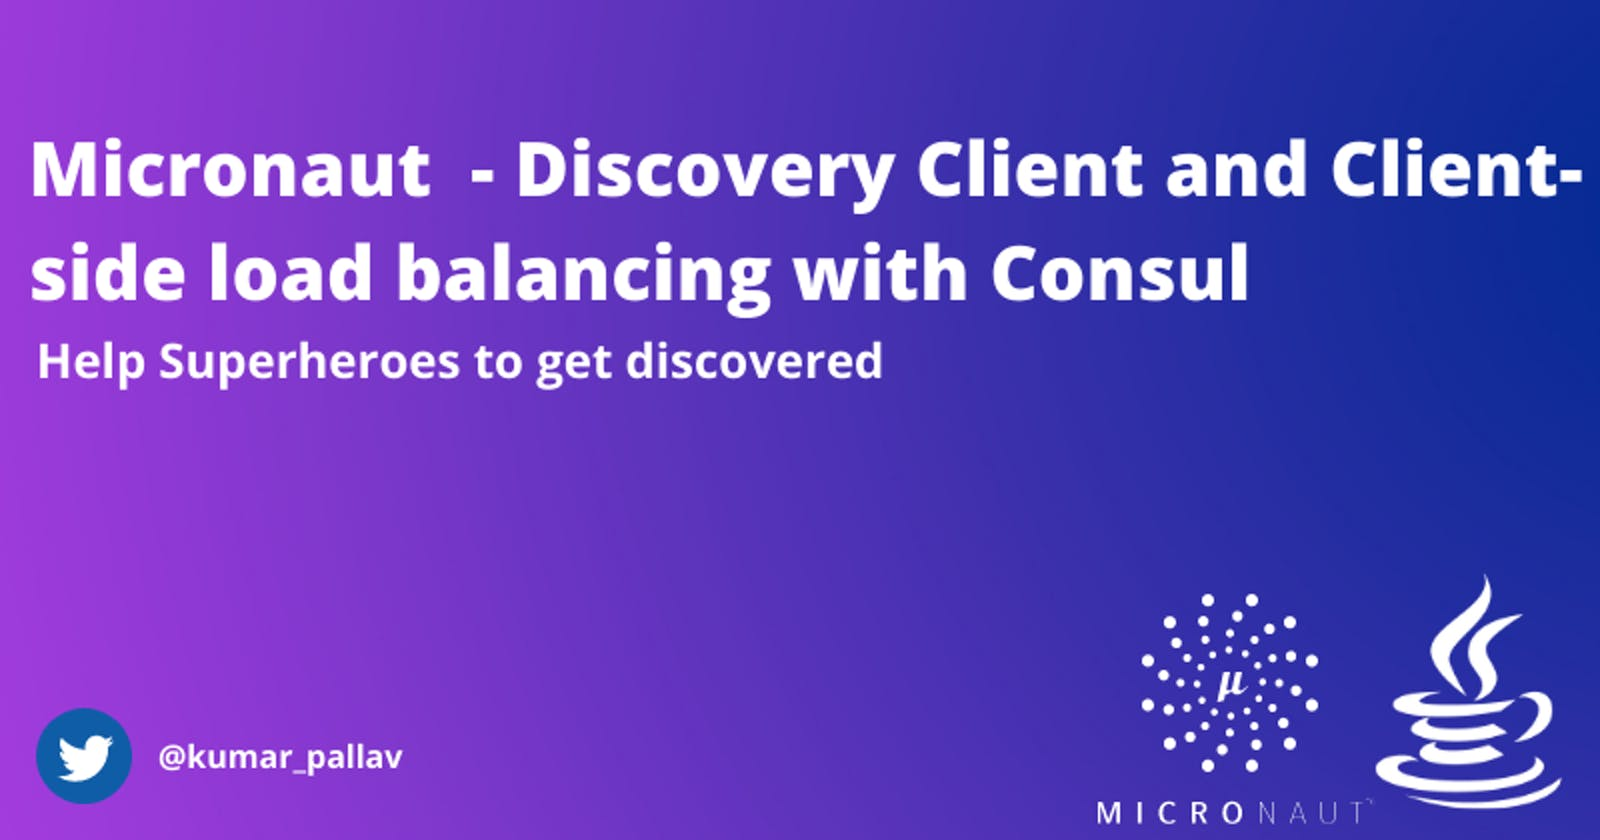 Micronaut  - Discovery Client and Client-side load balancing with Consul